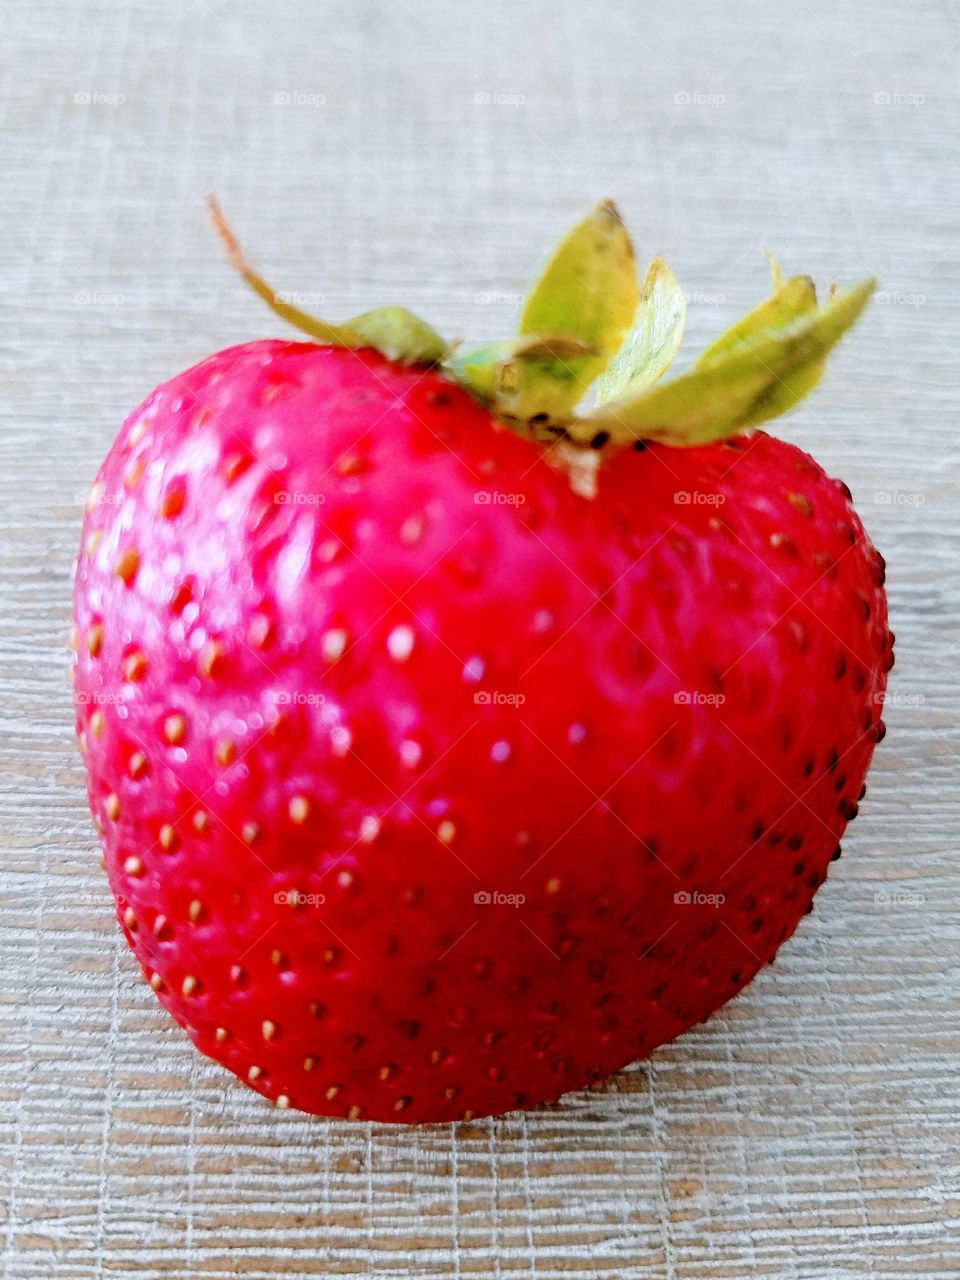 Juicy Strawberry Close-up